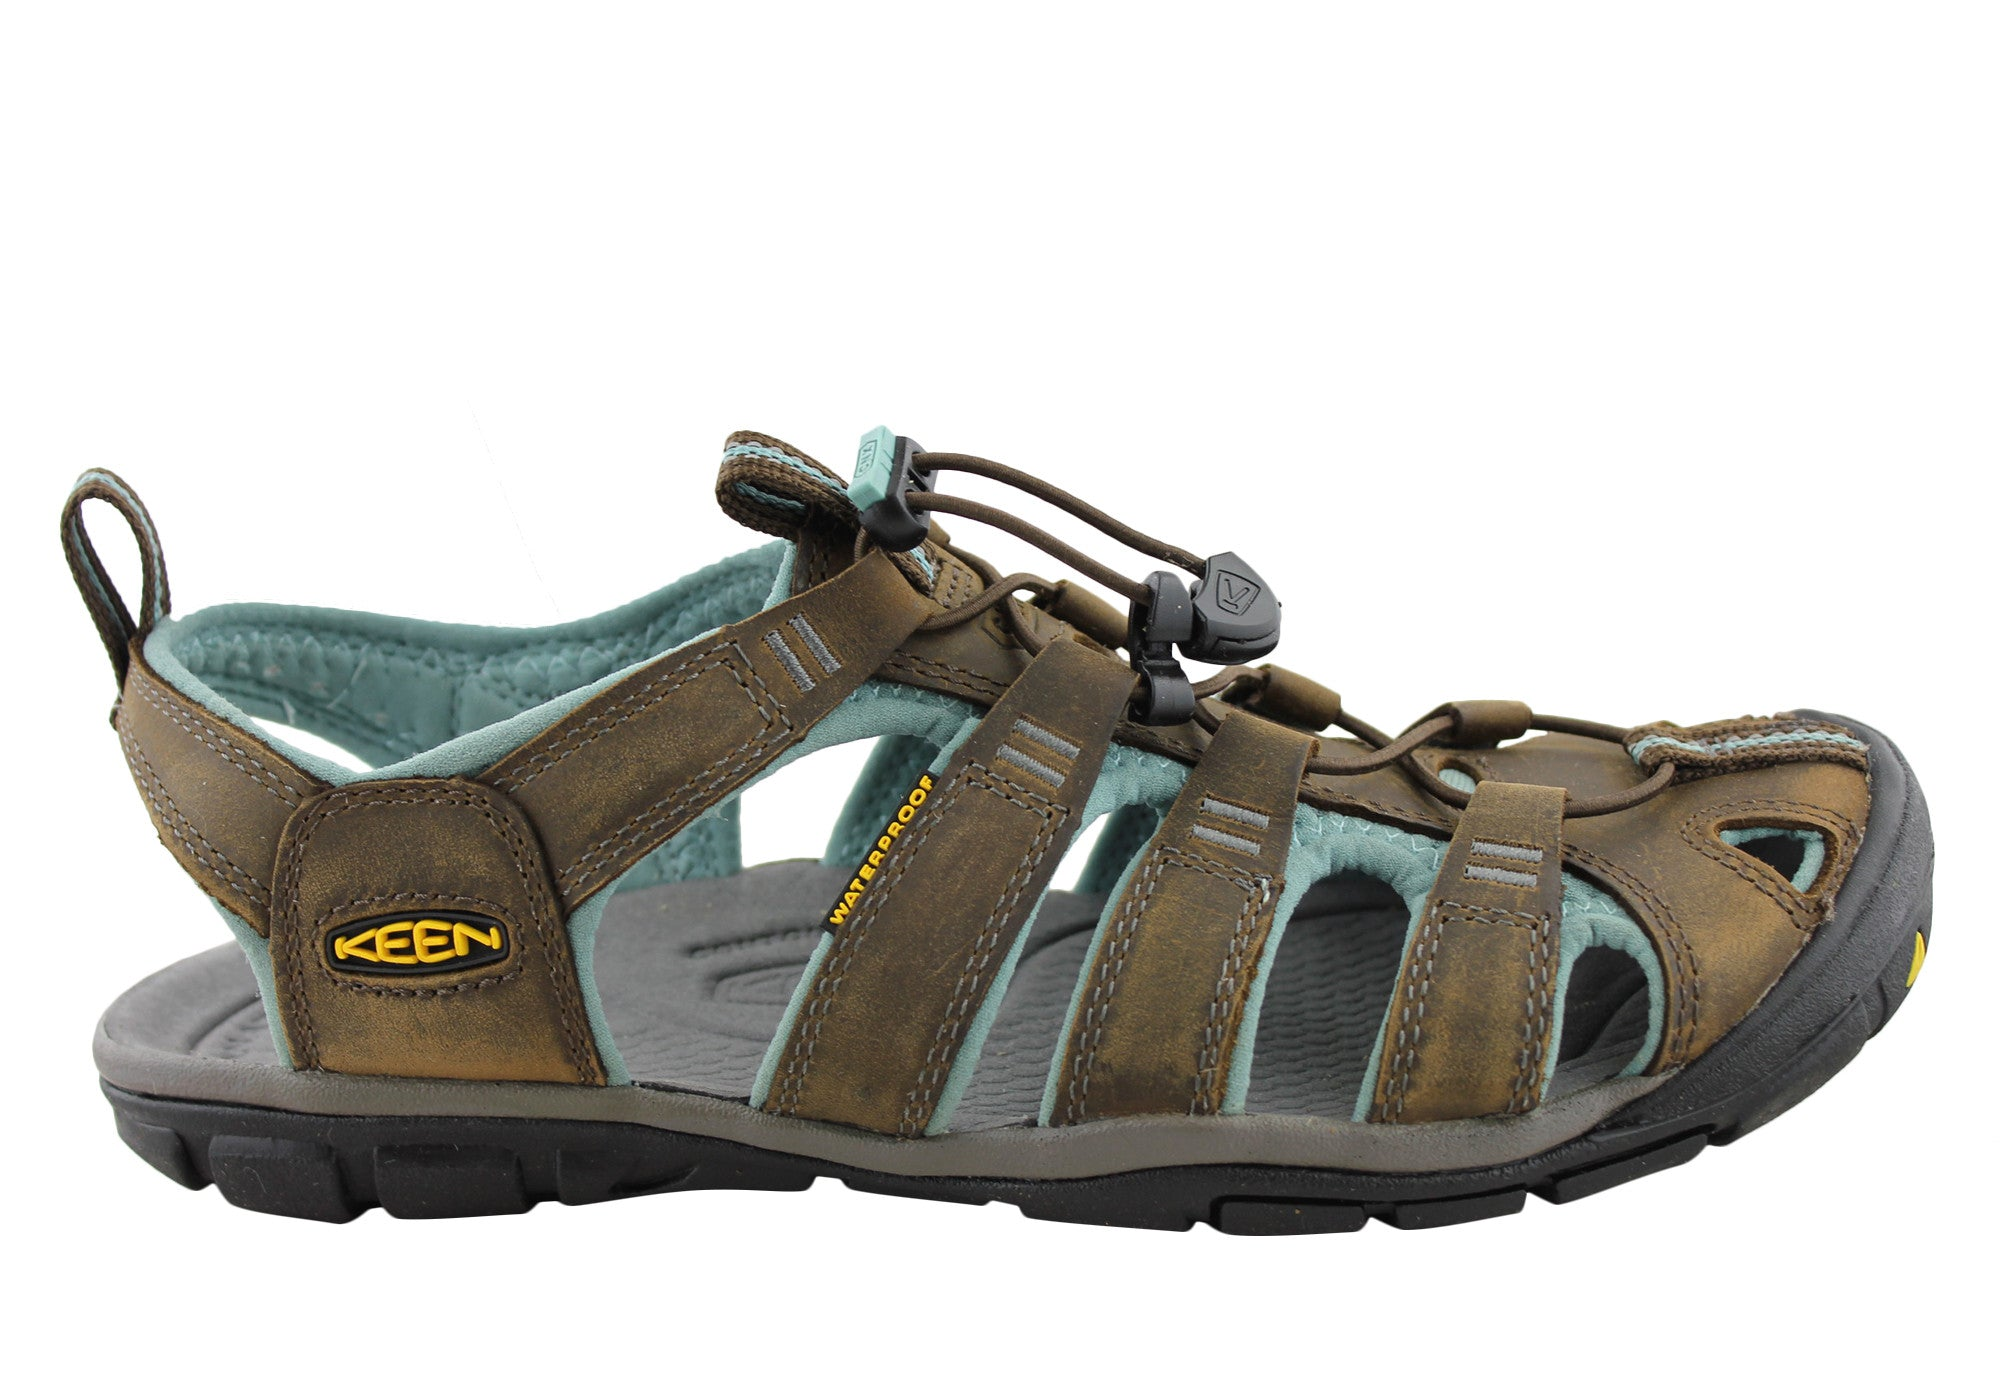 NEW KEEN CLEARWATER CNX LEATHER WOMENS COMFORTABLE SANDALS | eBay